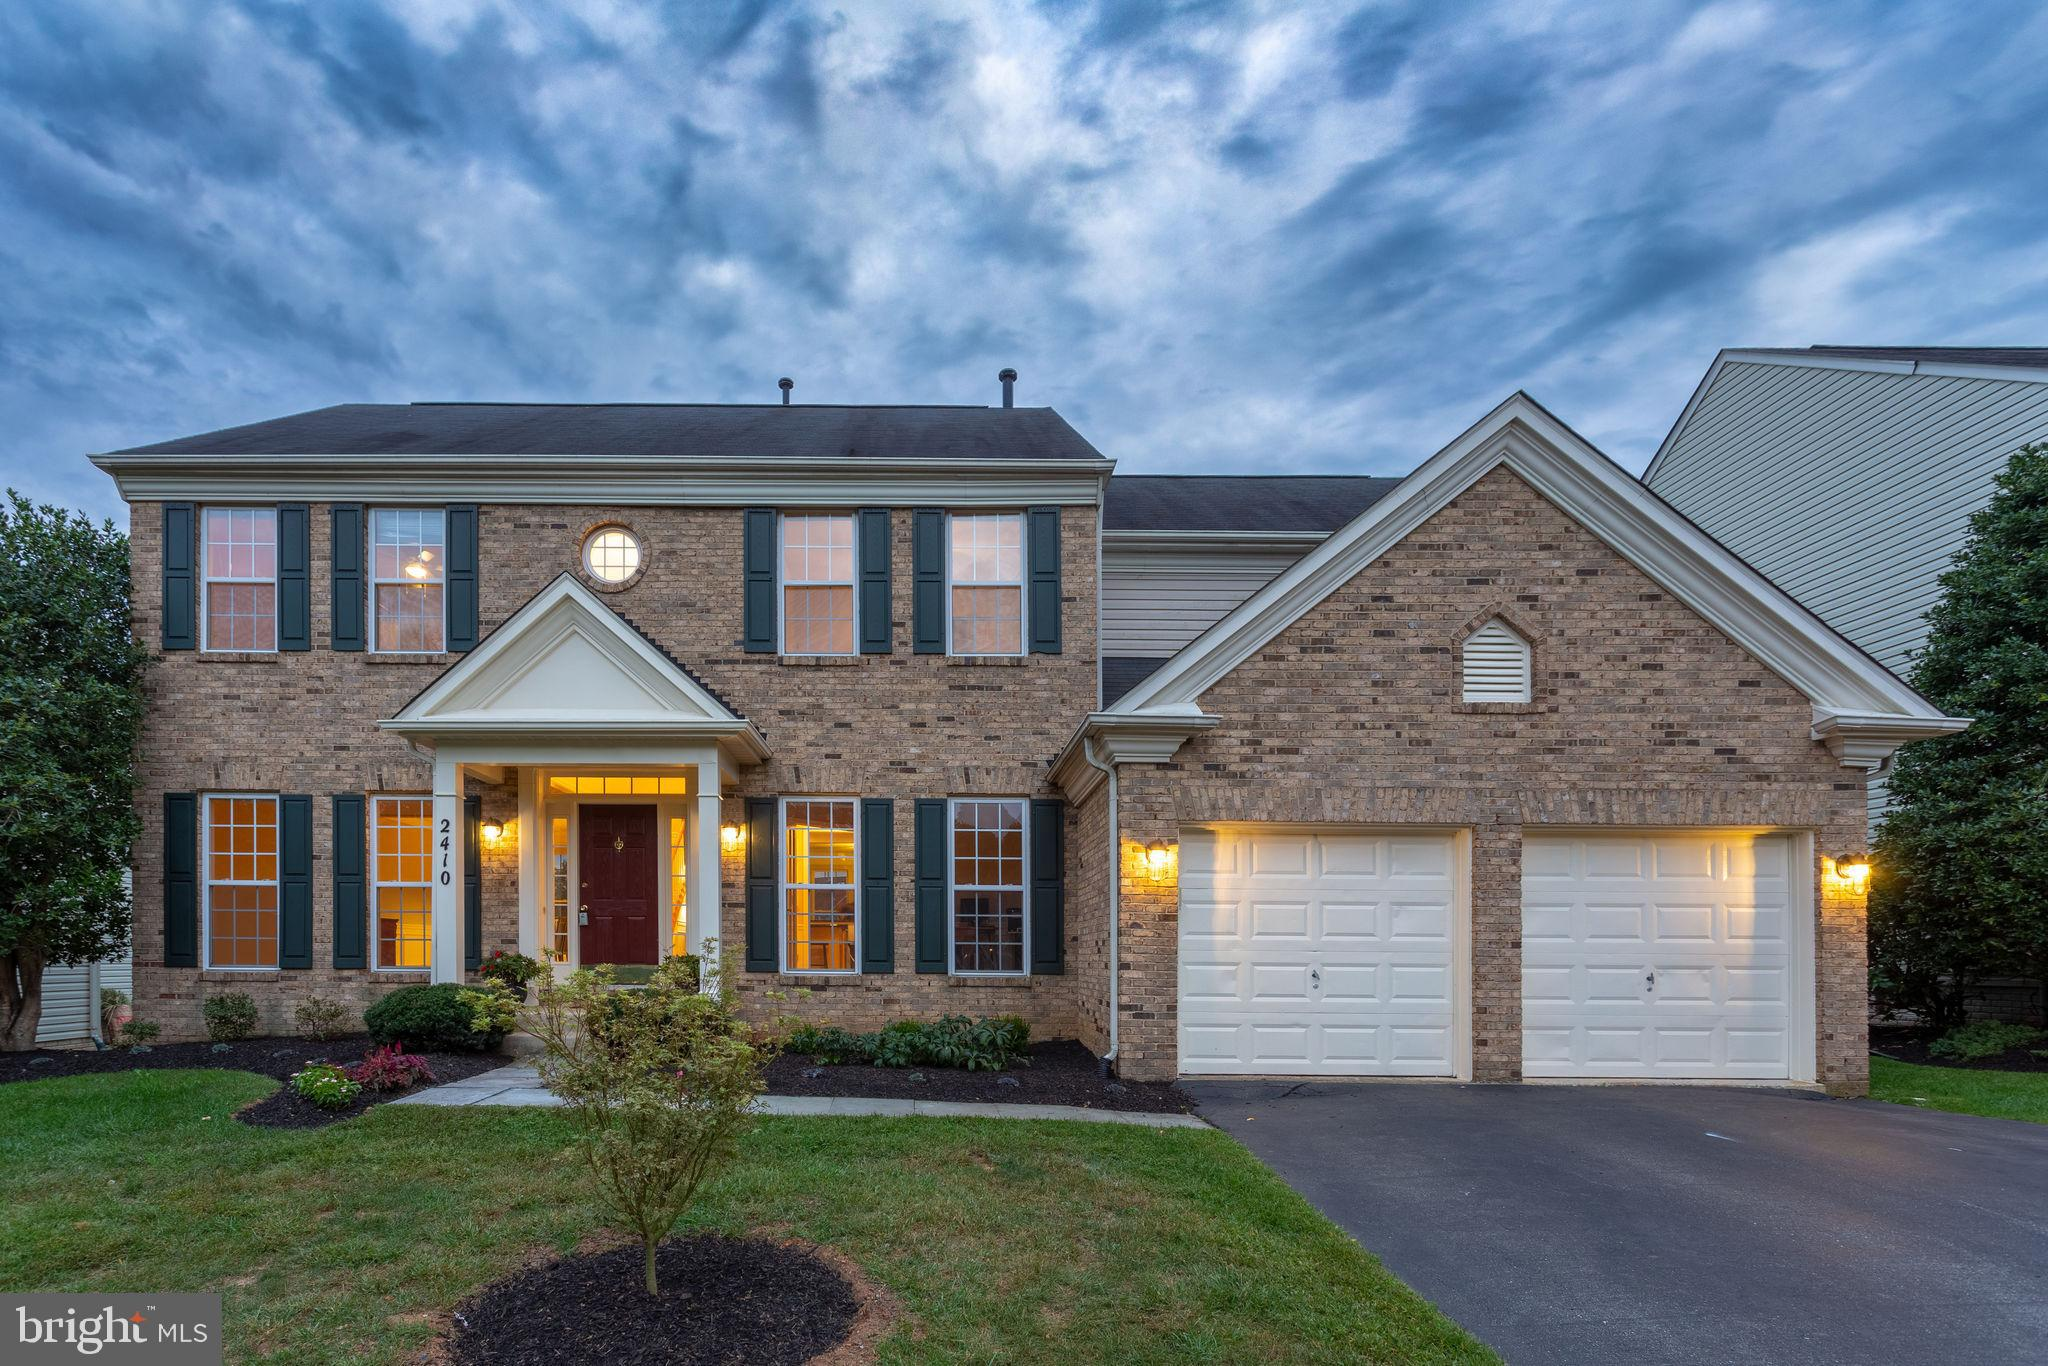 2410 ST GEORGE WAY, BROOKEVILLE, MD 20833